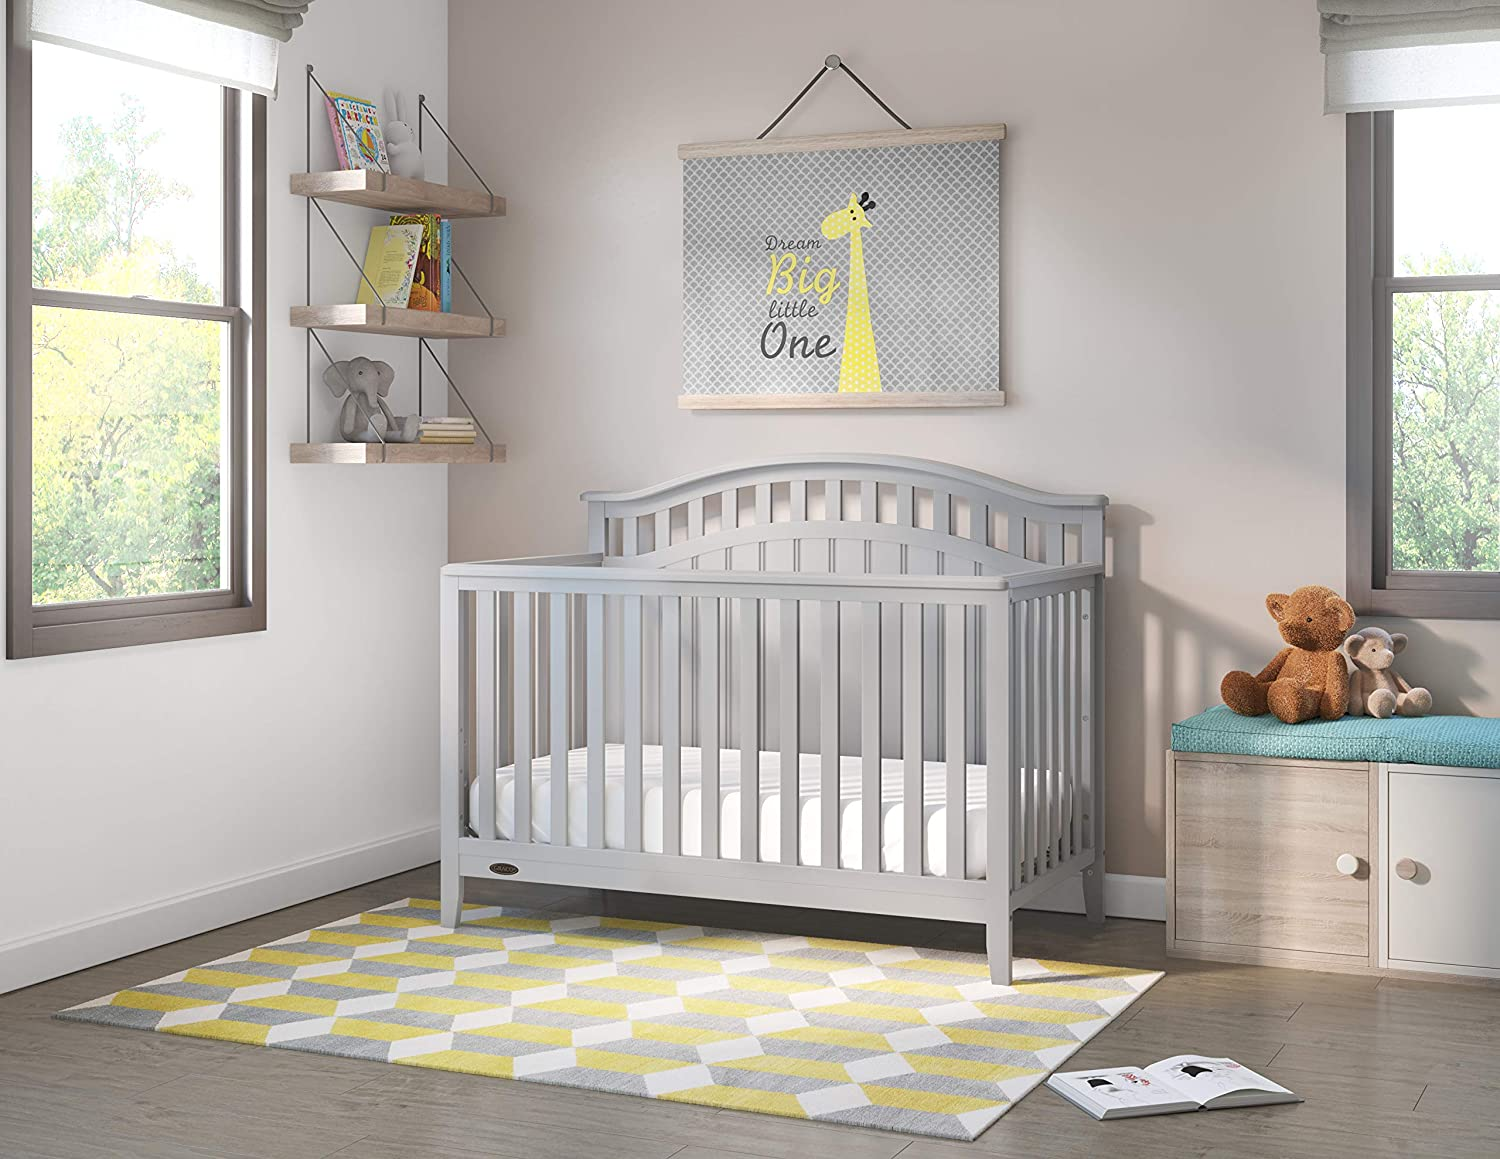 Mattress Not Included Graco Harper 4-in-1 Convertible Crib with Drawer Easily Converts to Toddler Bed Day Bed or Full Bed,Three Position Adjustable Height Mattress,Some Assembly Required Pebble Gray